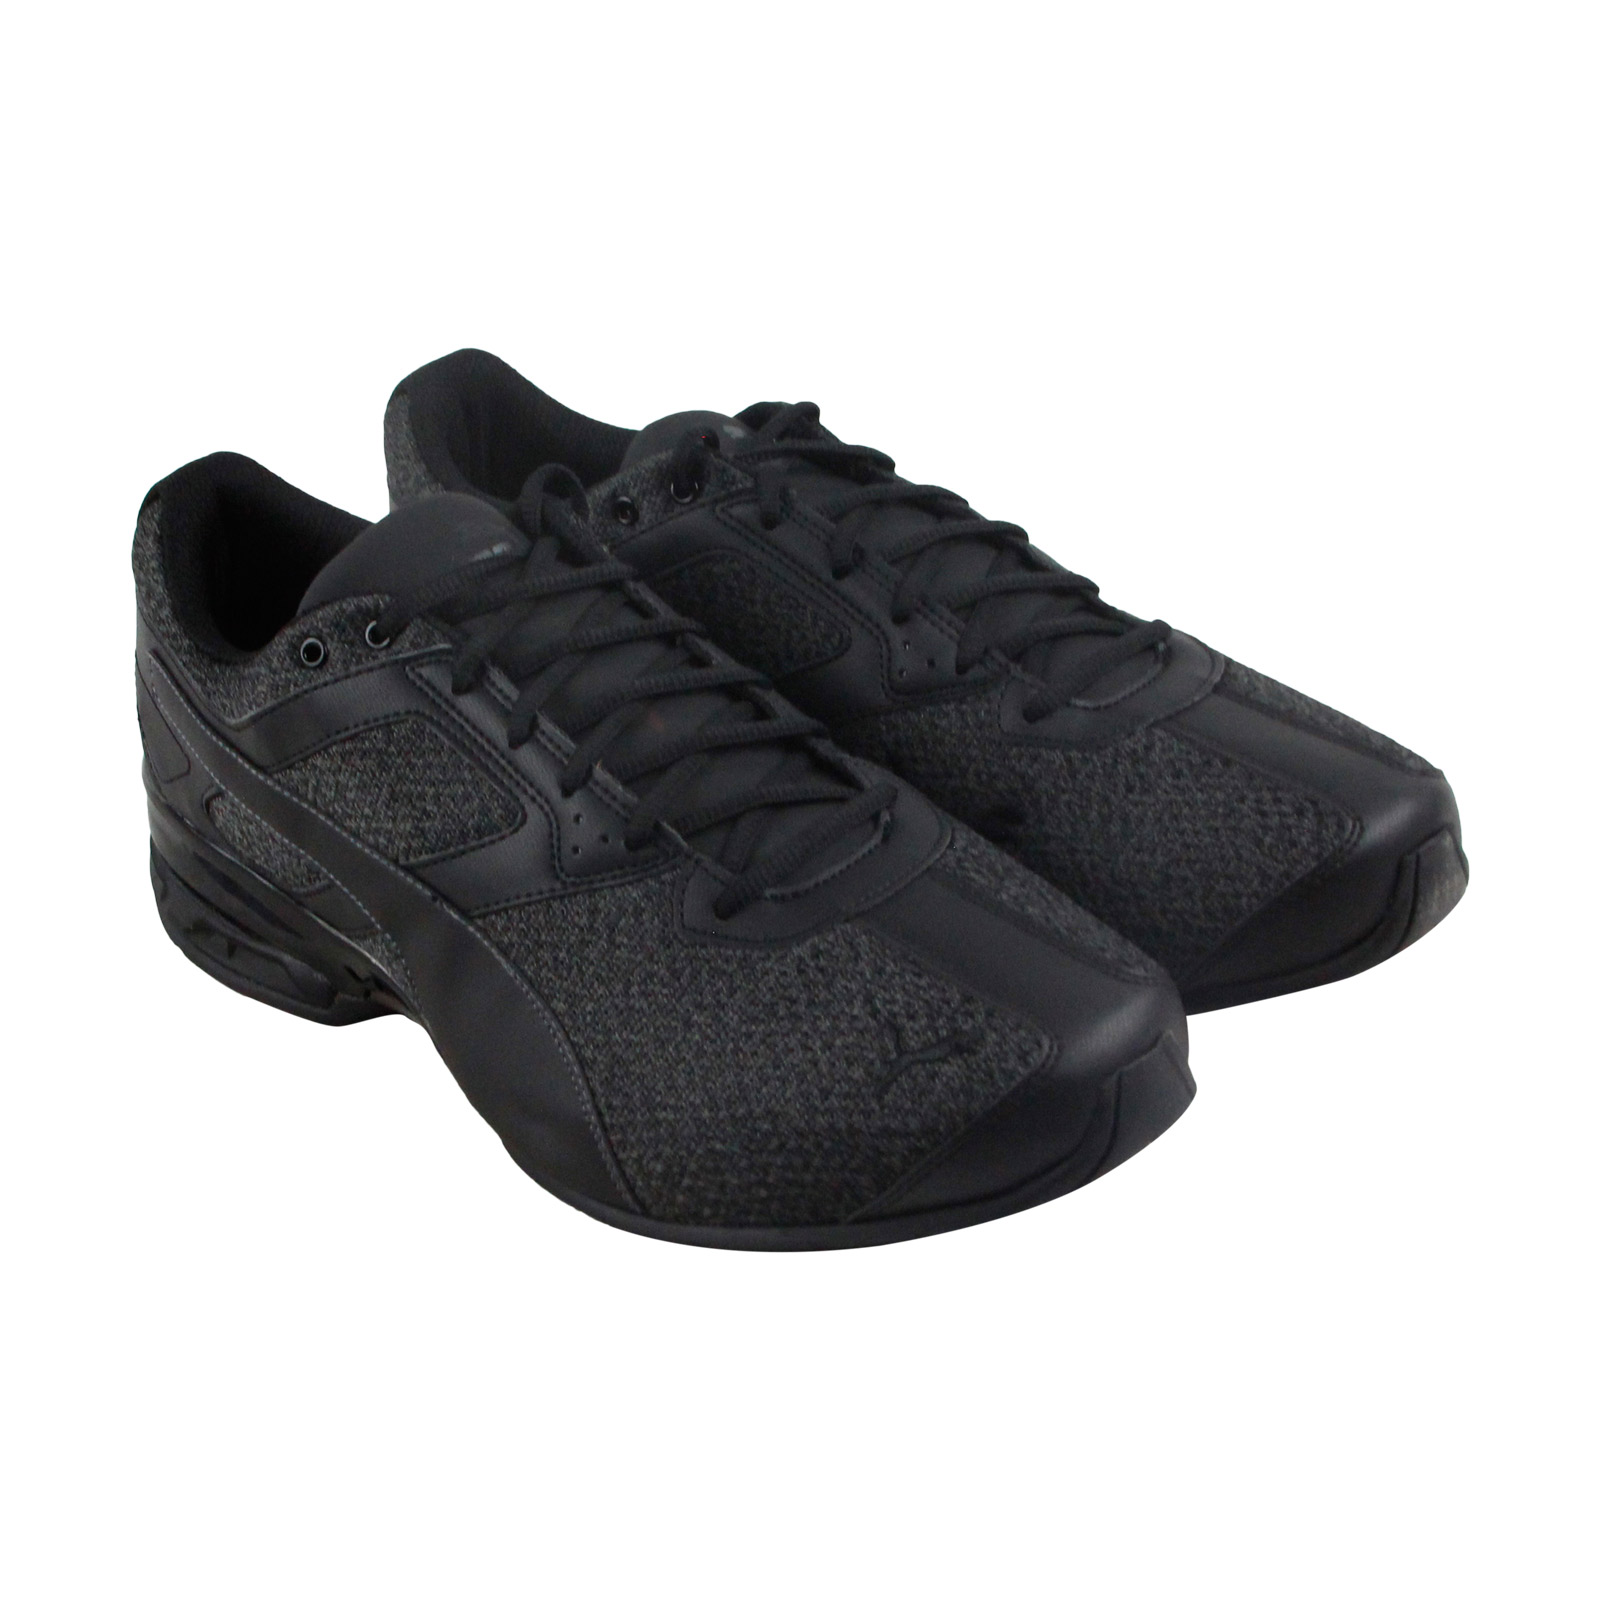 caecaa760d4a PUMA TAZON 6 Knit Mens Black Textile Athletic Lace Up Running Shoes ...